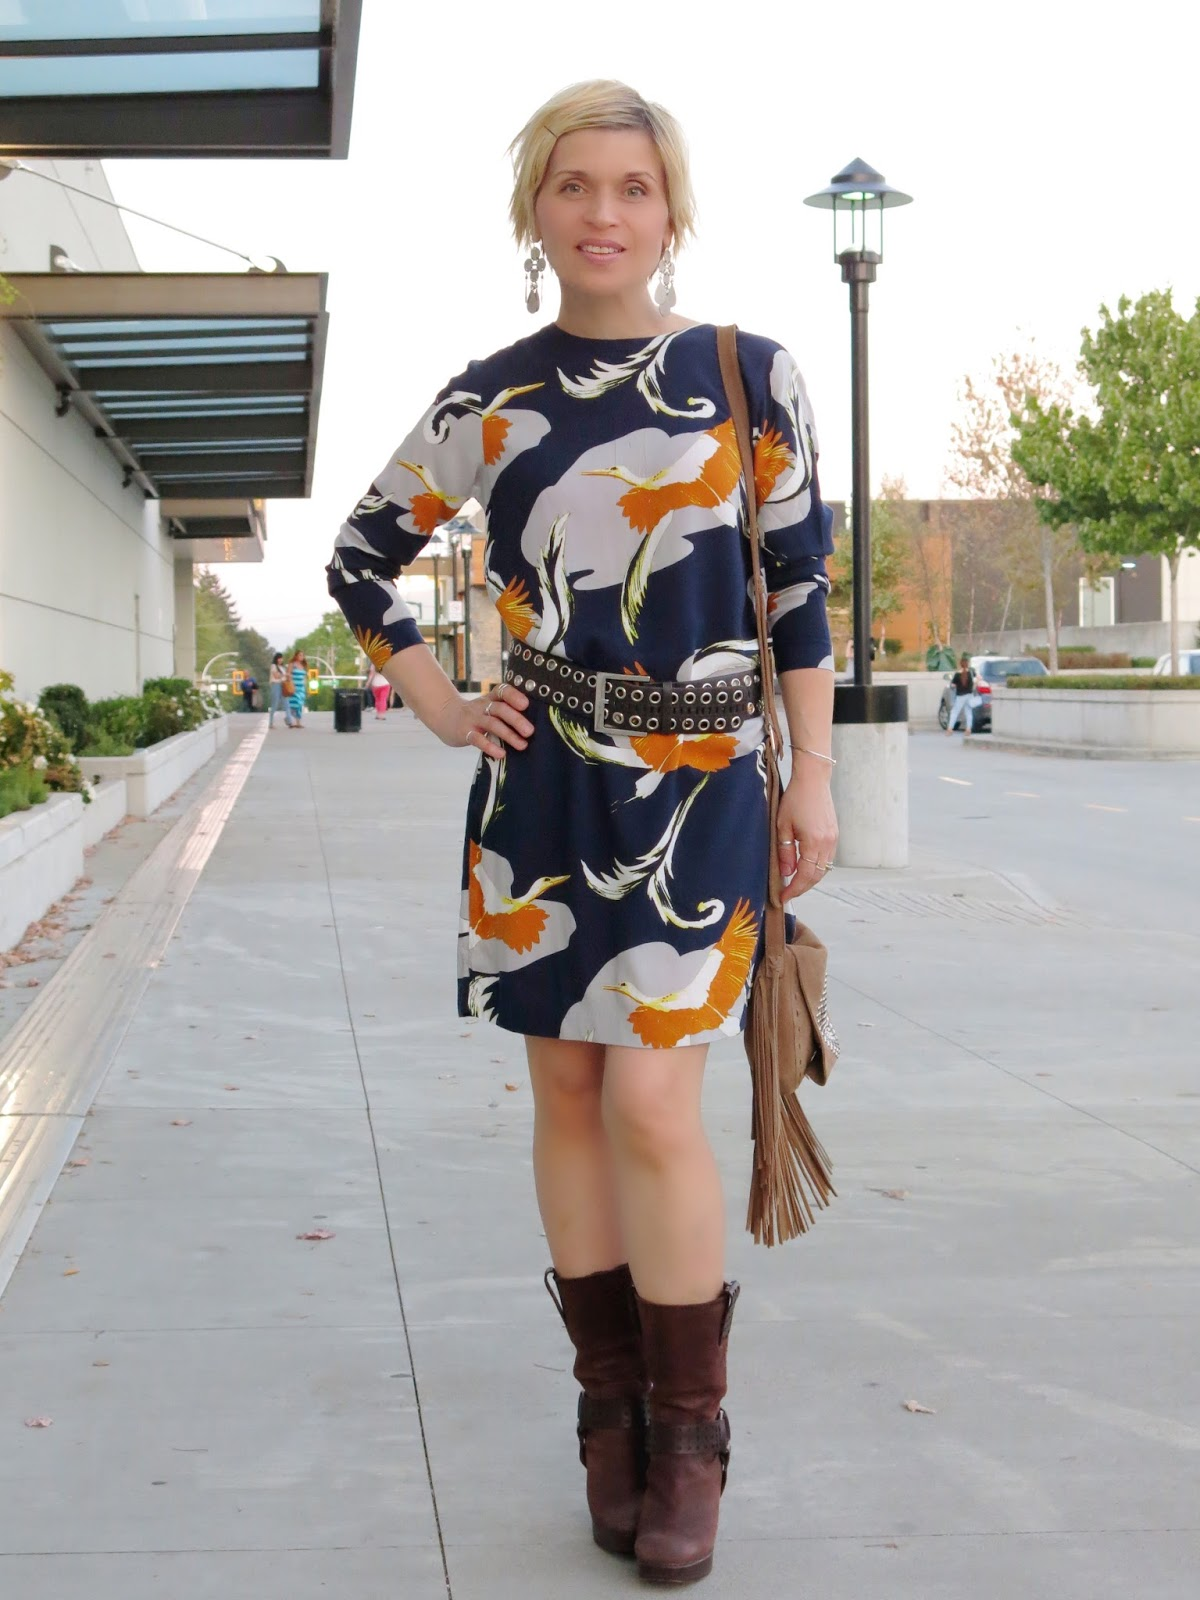 styling a stork-print shift dress with a wide belt and Frye platform booties